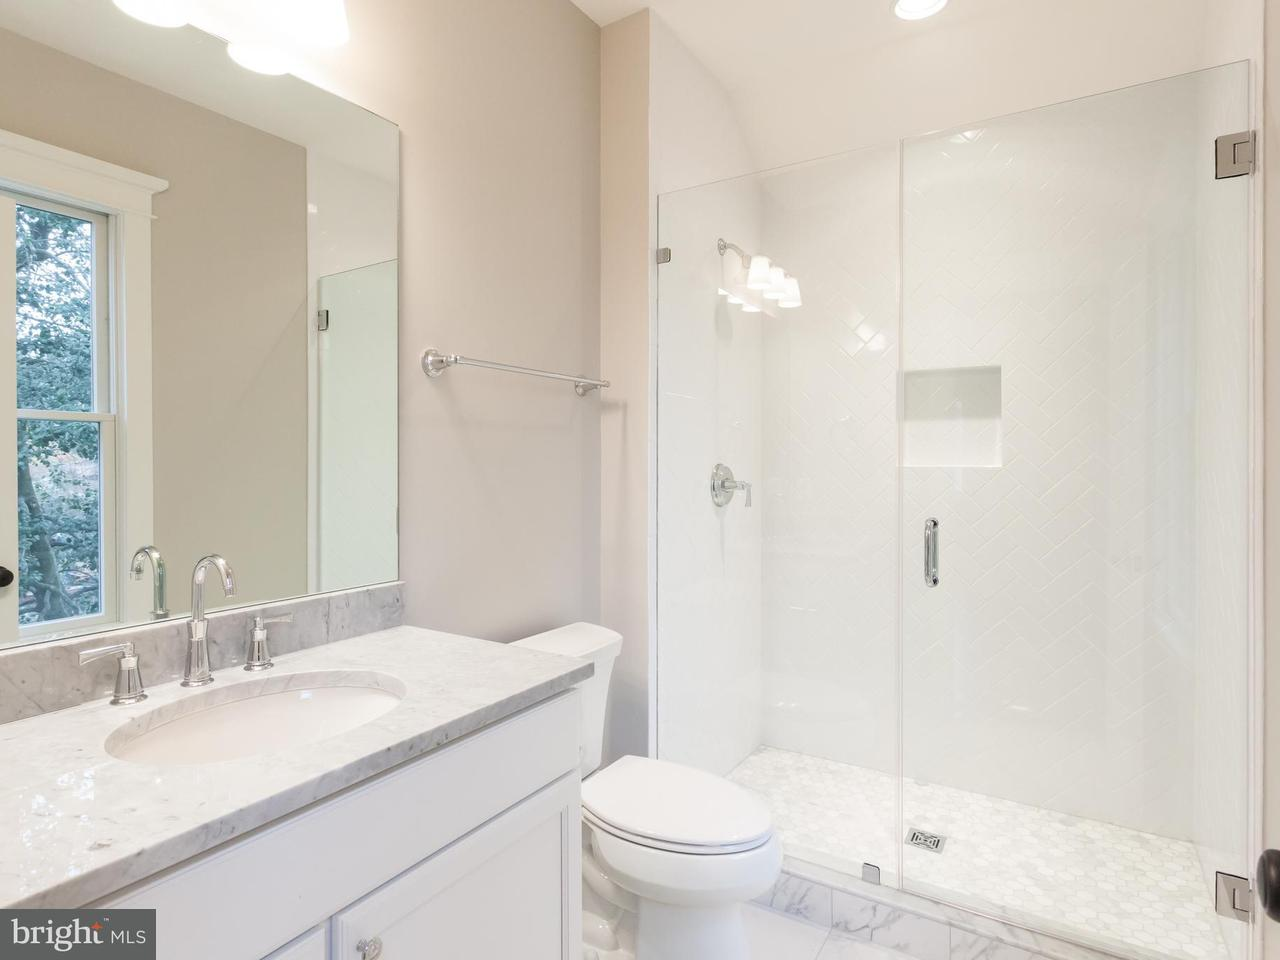 Single Family Home for Sale at 3737 VERMONT Street 3737 VERMONT Street Arlington, Virginia 22207 United States